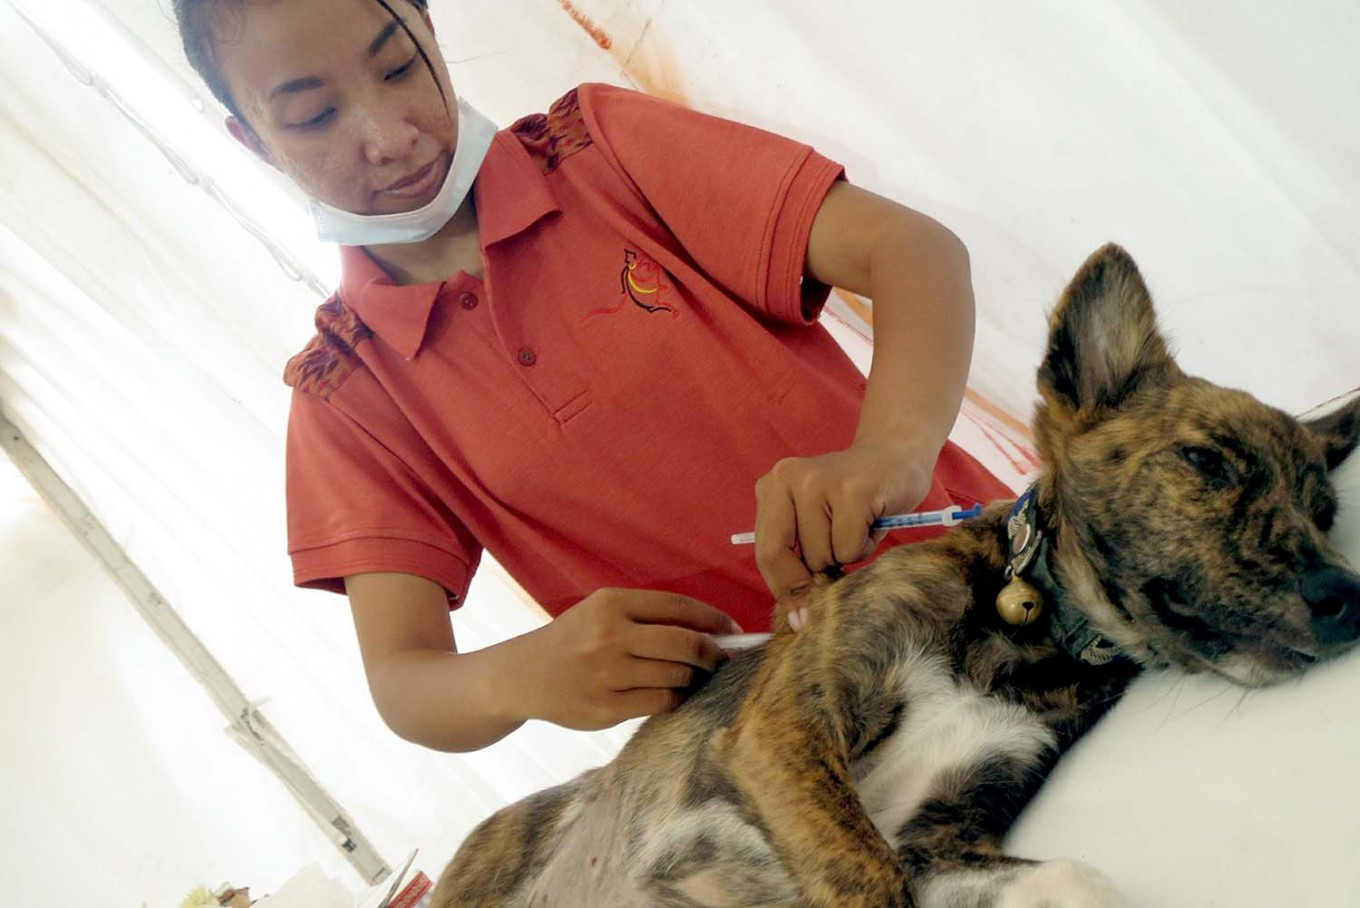 A veterinarian anesthetizes a dog during a free rabies vaccination and neutering program at Lumintang Field, Denpasar, on Nov. 24, 2016. JP/ Zul Trio Anggono